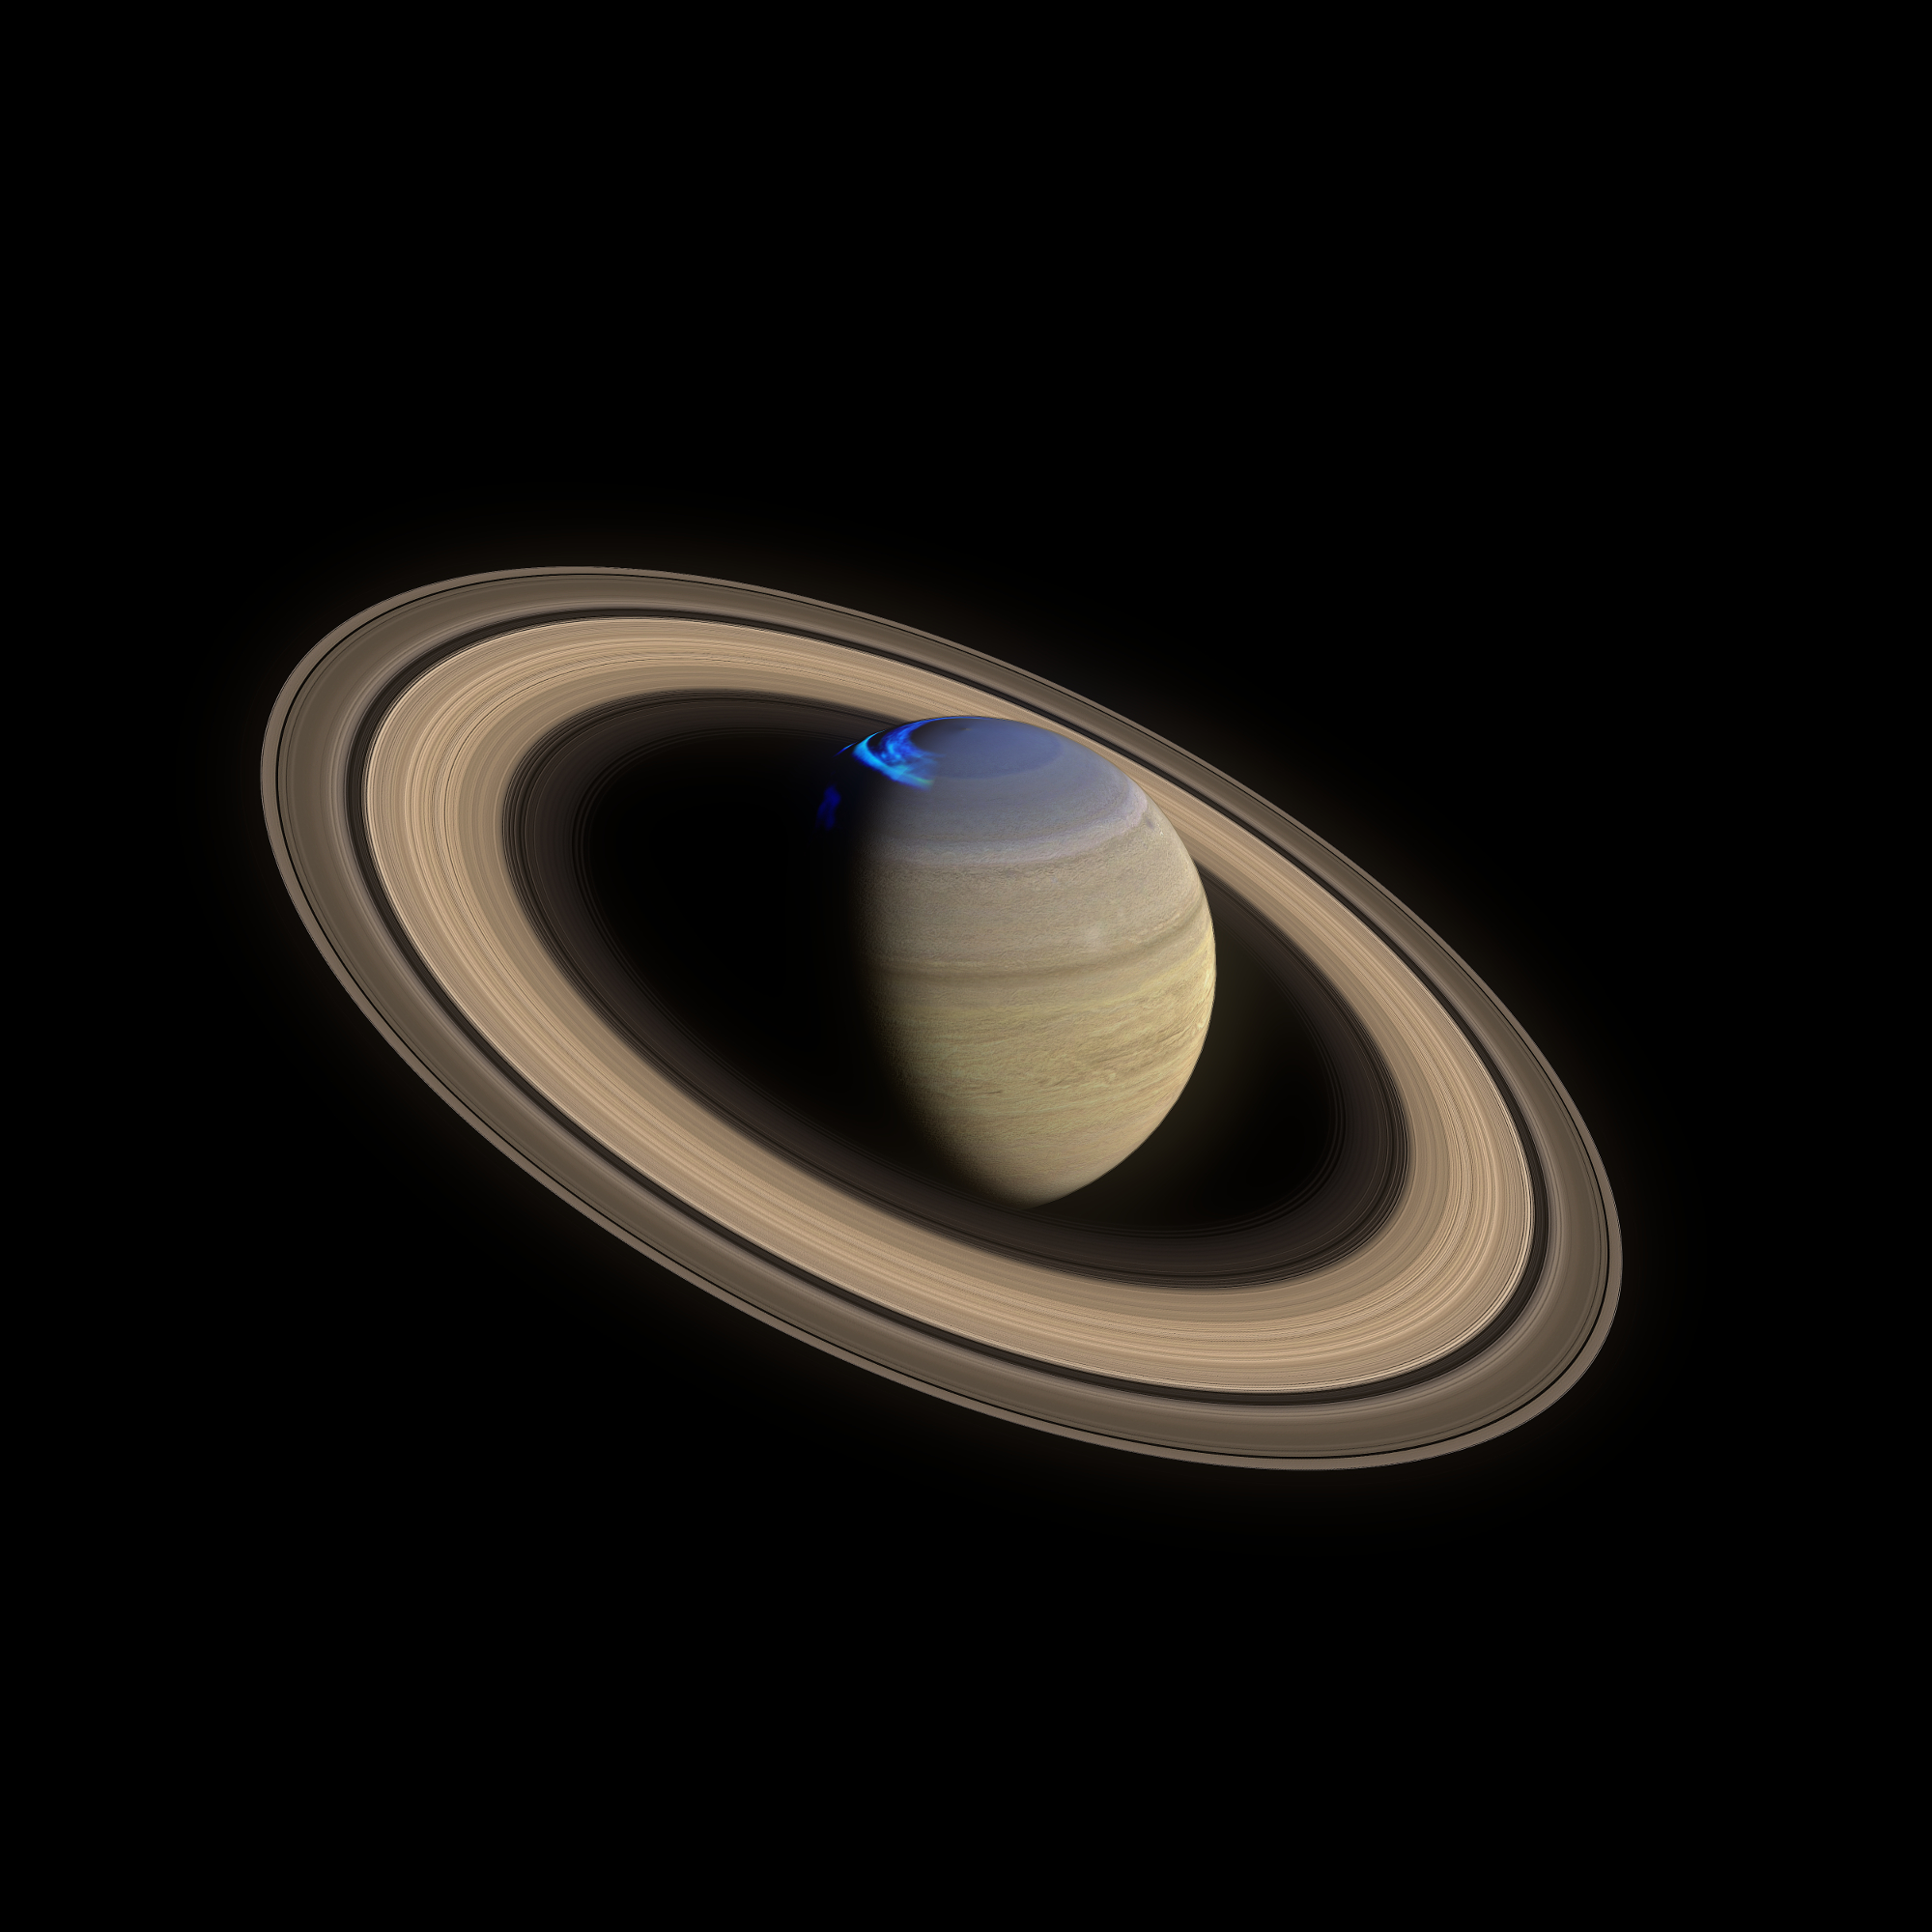 saturn 4k 3d model obj fbx 3ds dae 263338